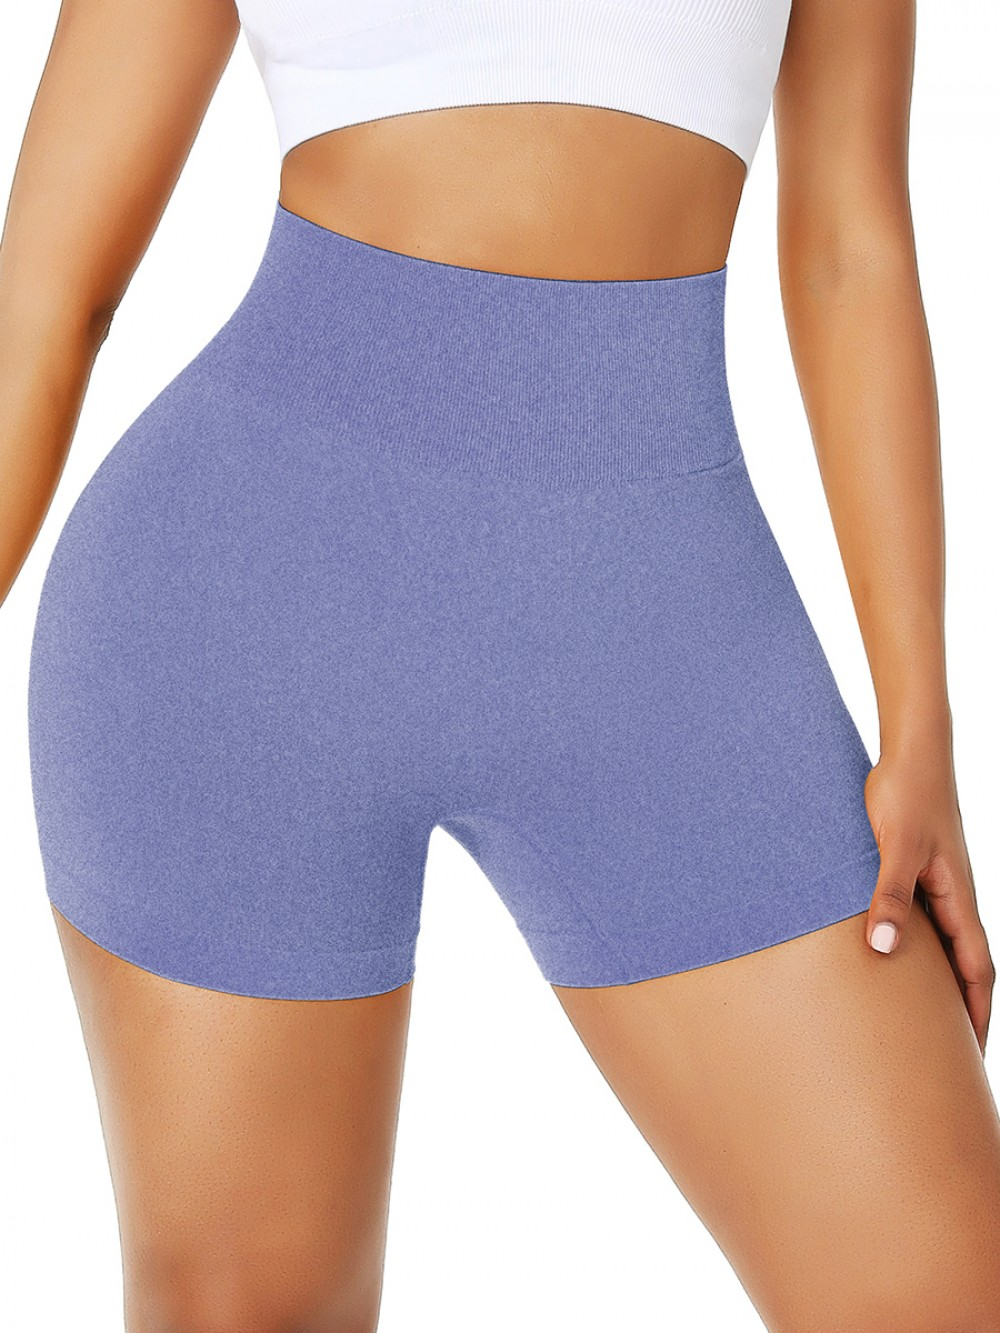 Royal Blue Seamless Solid Color Workout Running Shorts Elastic Material